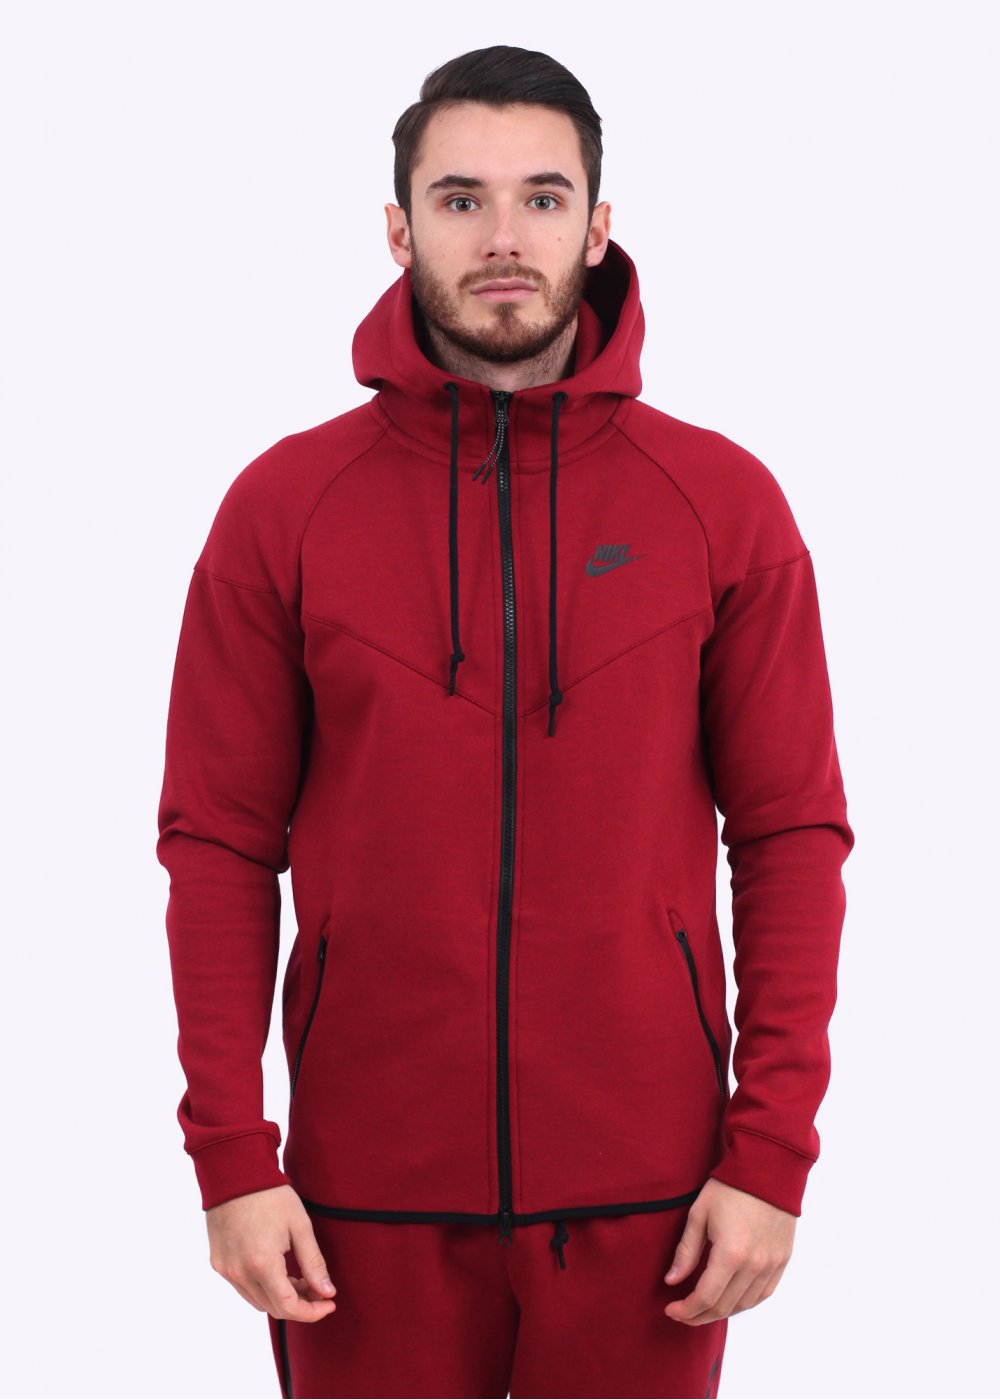 751d82ff9004 Nike Tech Fleece Windrunner - Burgundy